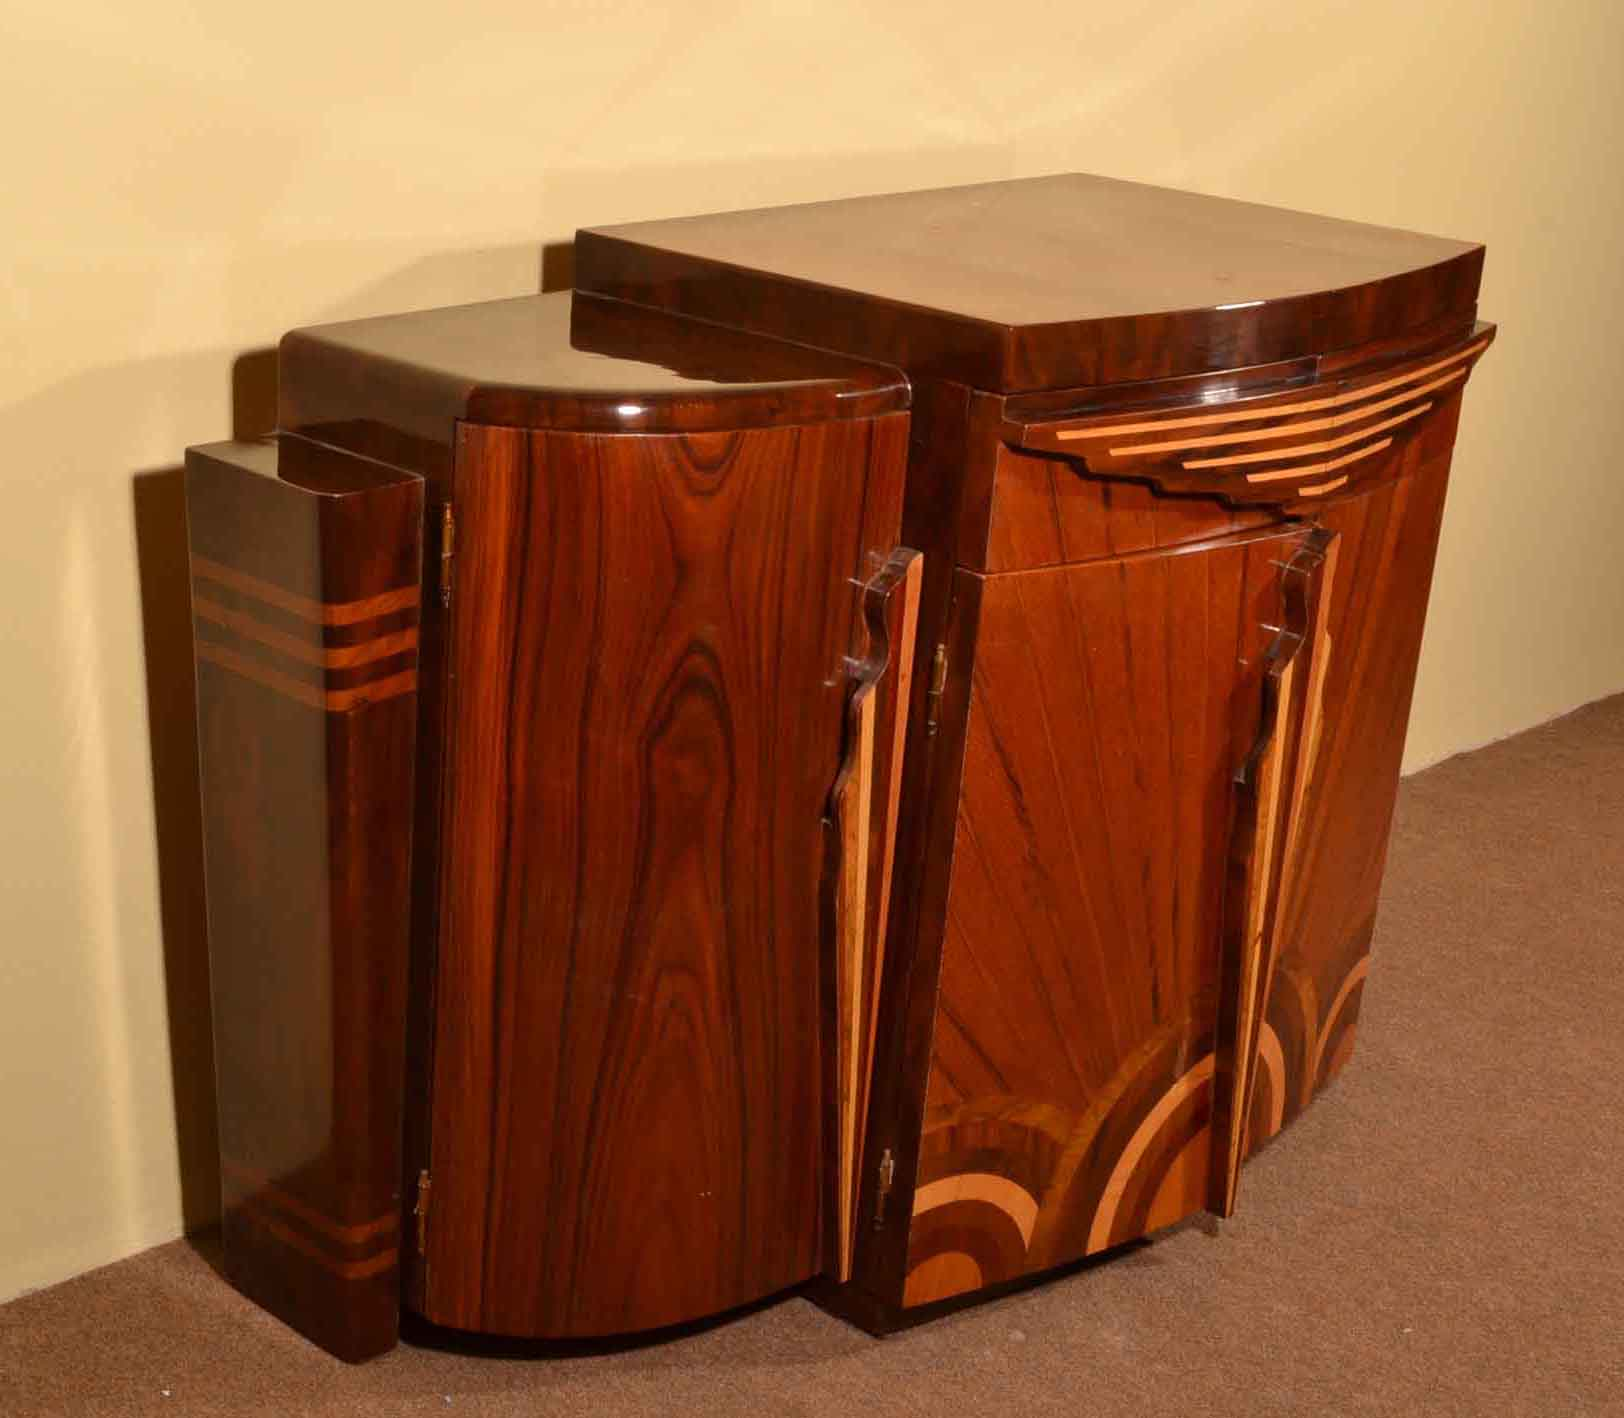 Art Deco Kitchen Cabinets: Art Deco 1920s Style Rosewood